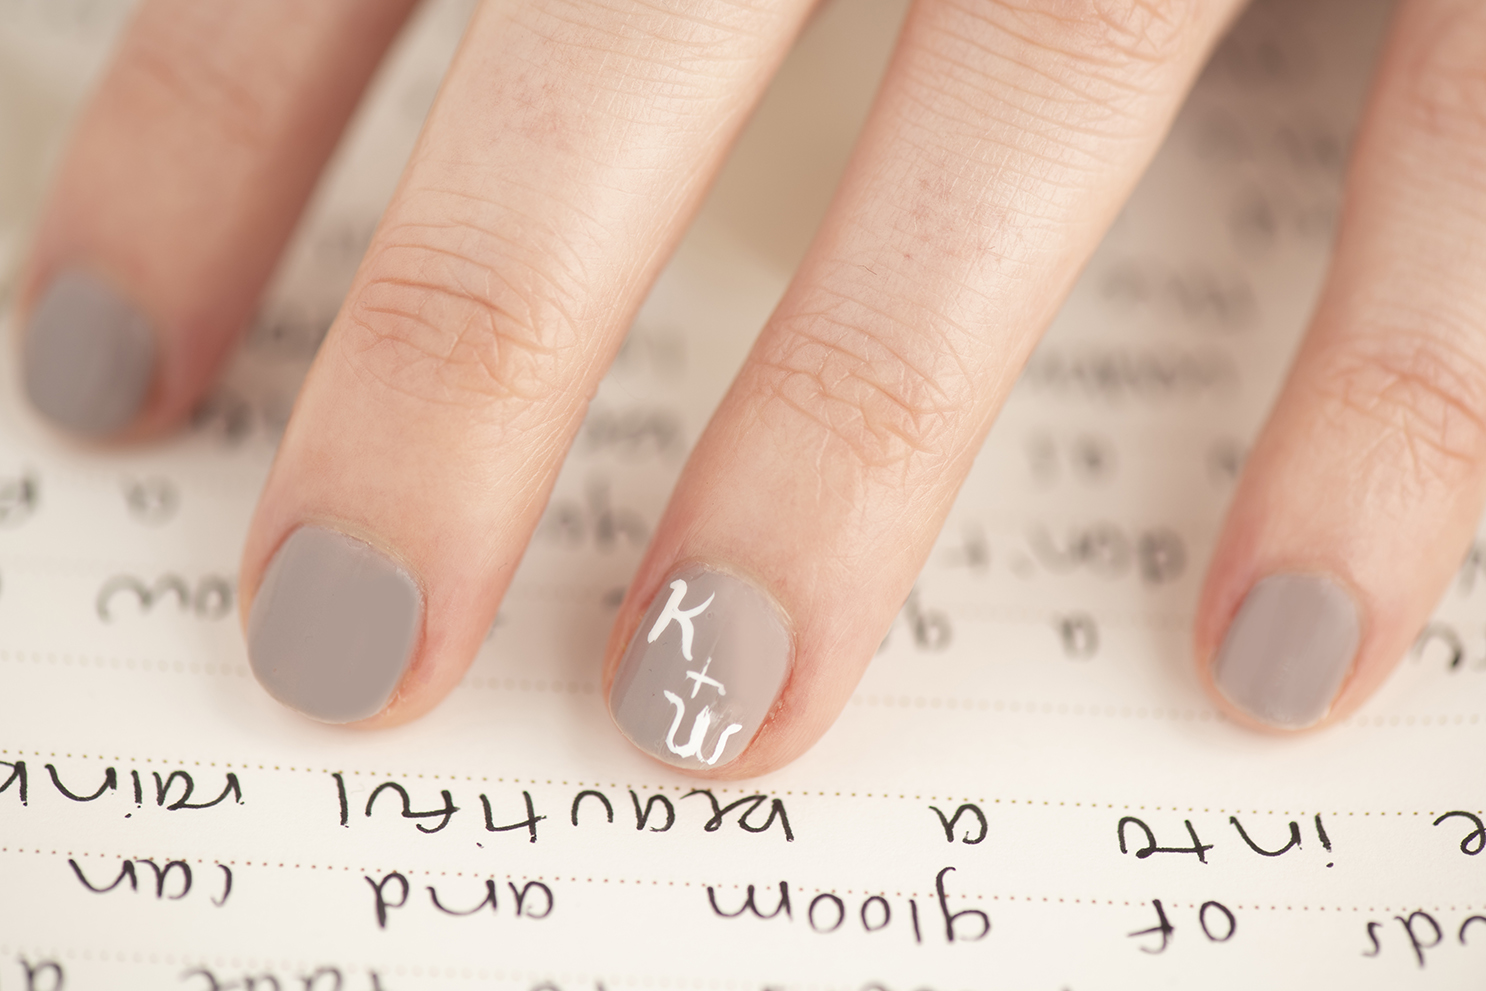 A close up of nail art on a woman's hand, hovering over her vows.